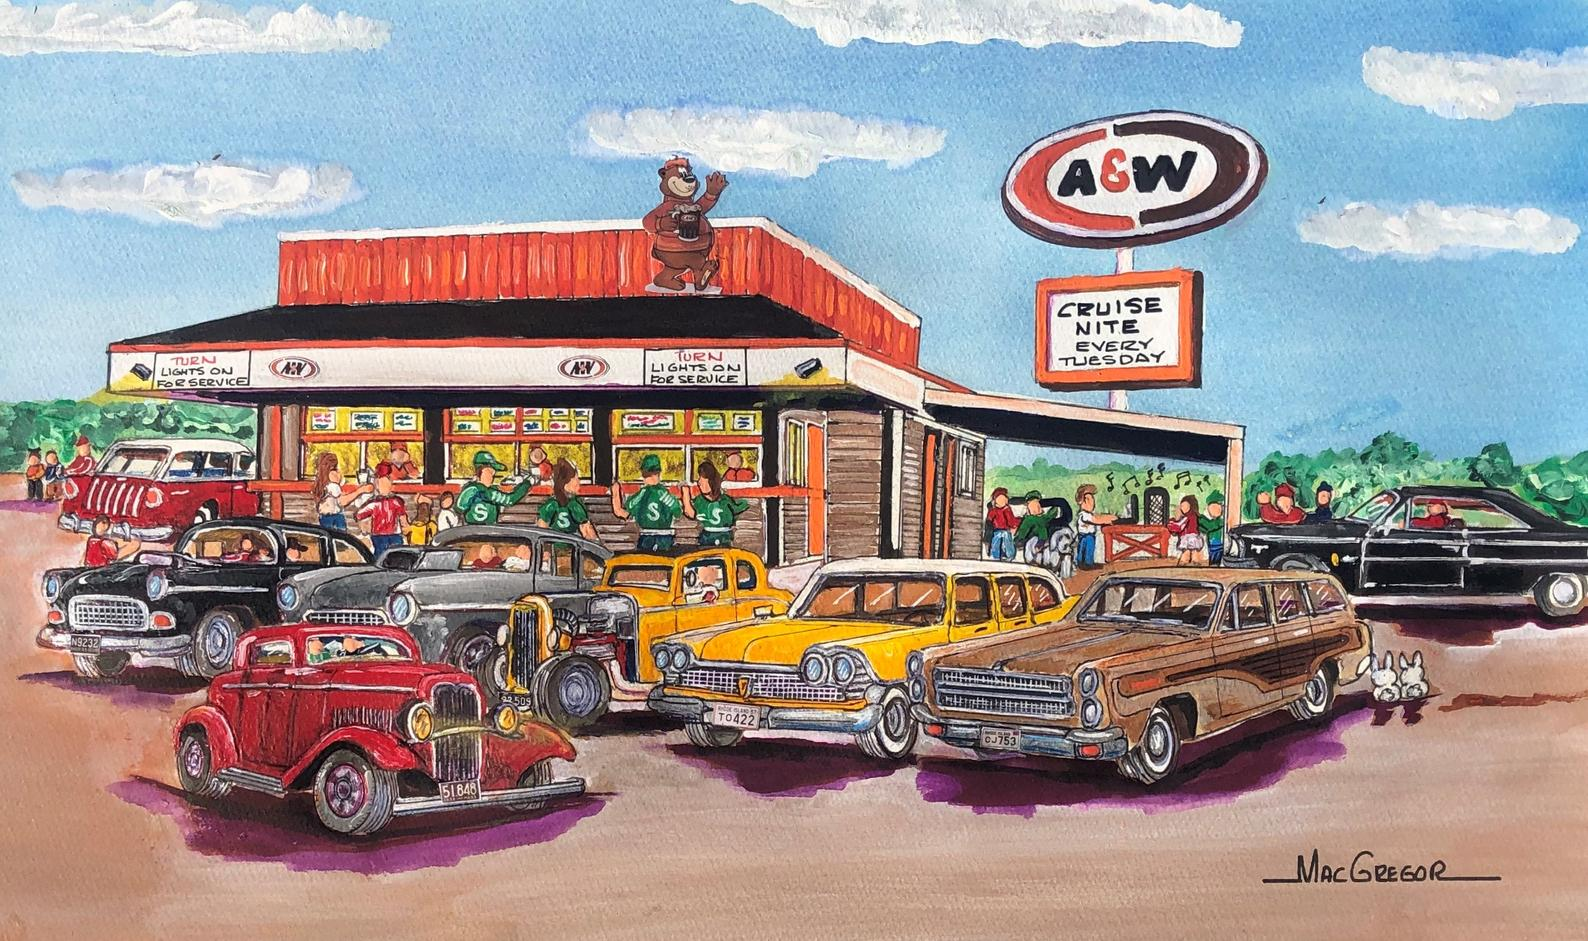 Art print of an A&W Restaurant exterior with cars parked outside.